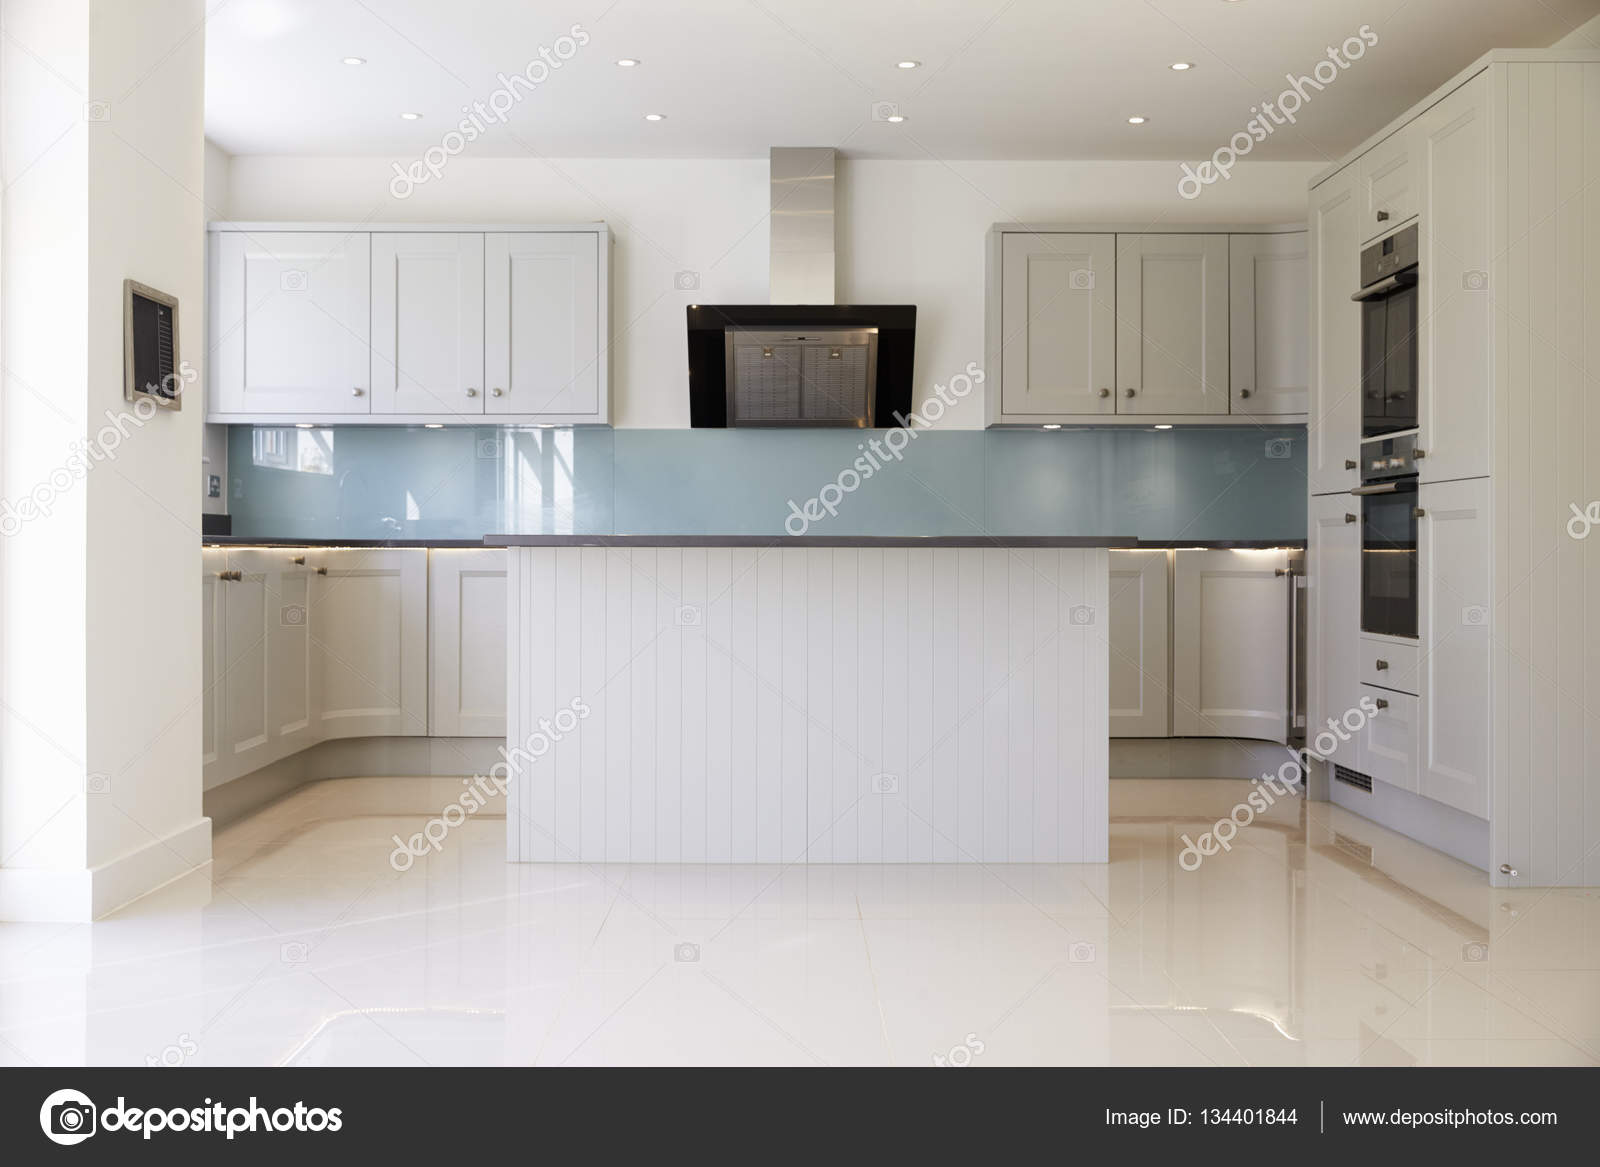 Lege keuken in modern huis u2014 stockfoto © monkeybusiness #134401844